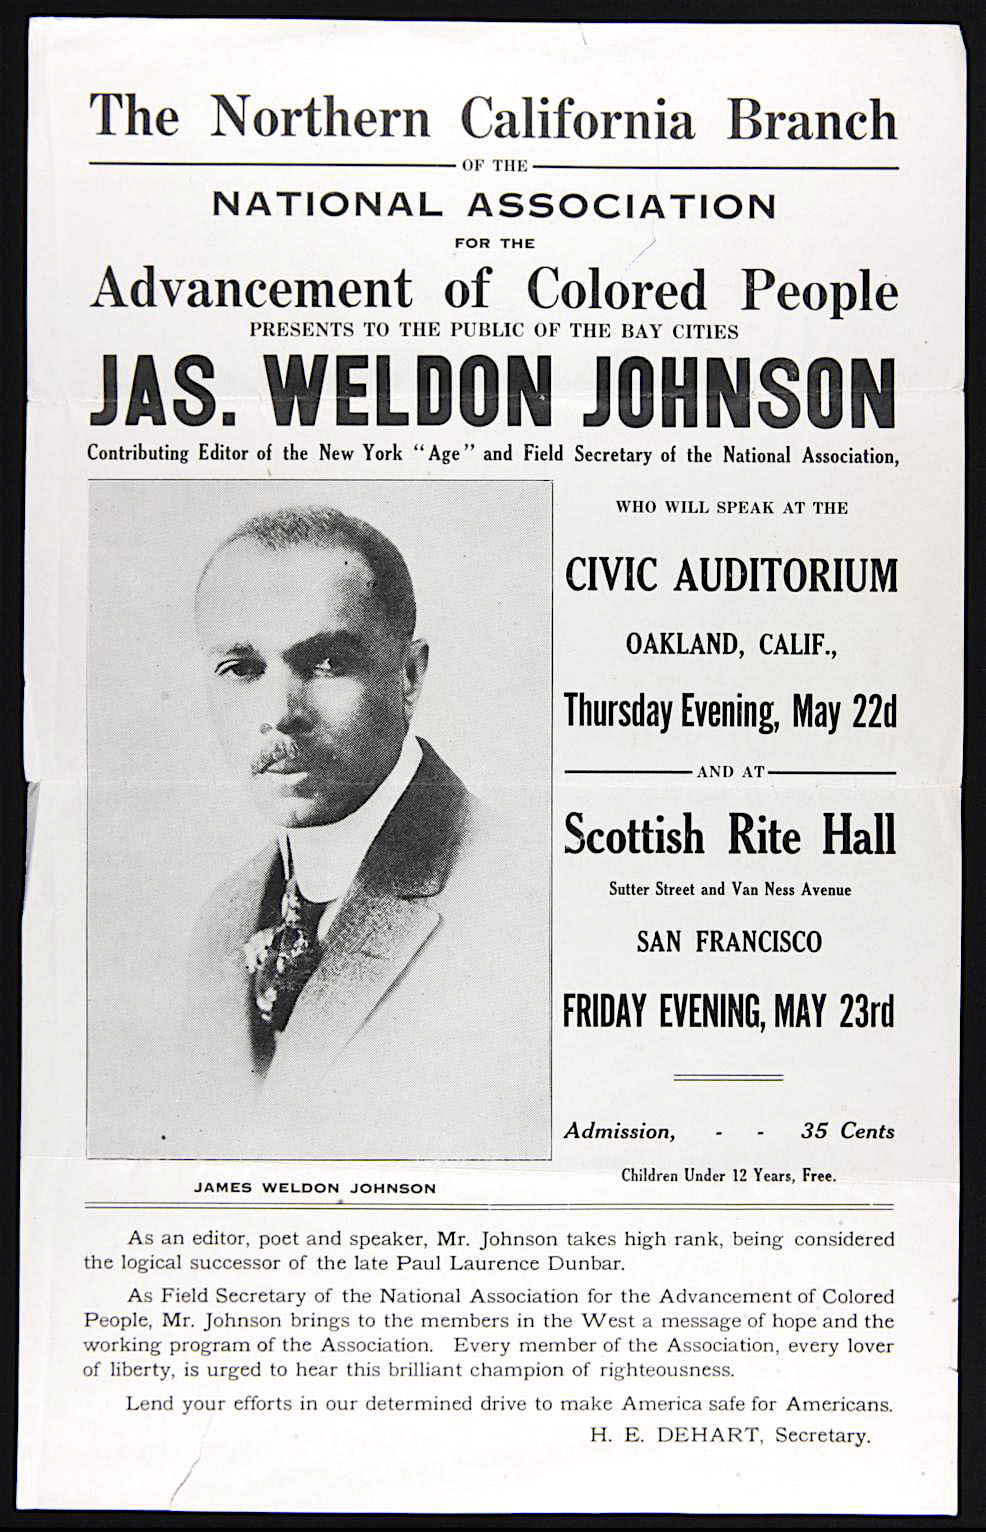 James Weldon Johnson, The Autobiography of an Ex-Coloured Man, Destined to Be Known: The James Weldon Johnson Memorial Collection at 75, KOLUMN Magazine, KOLUMN